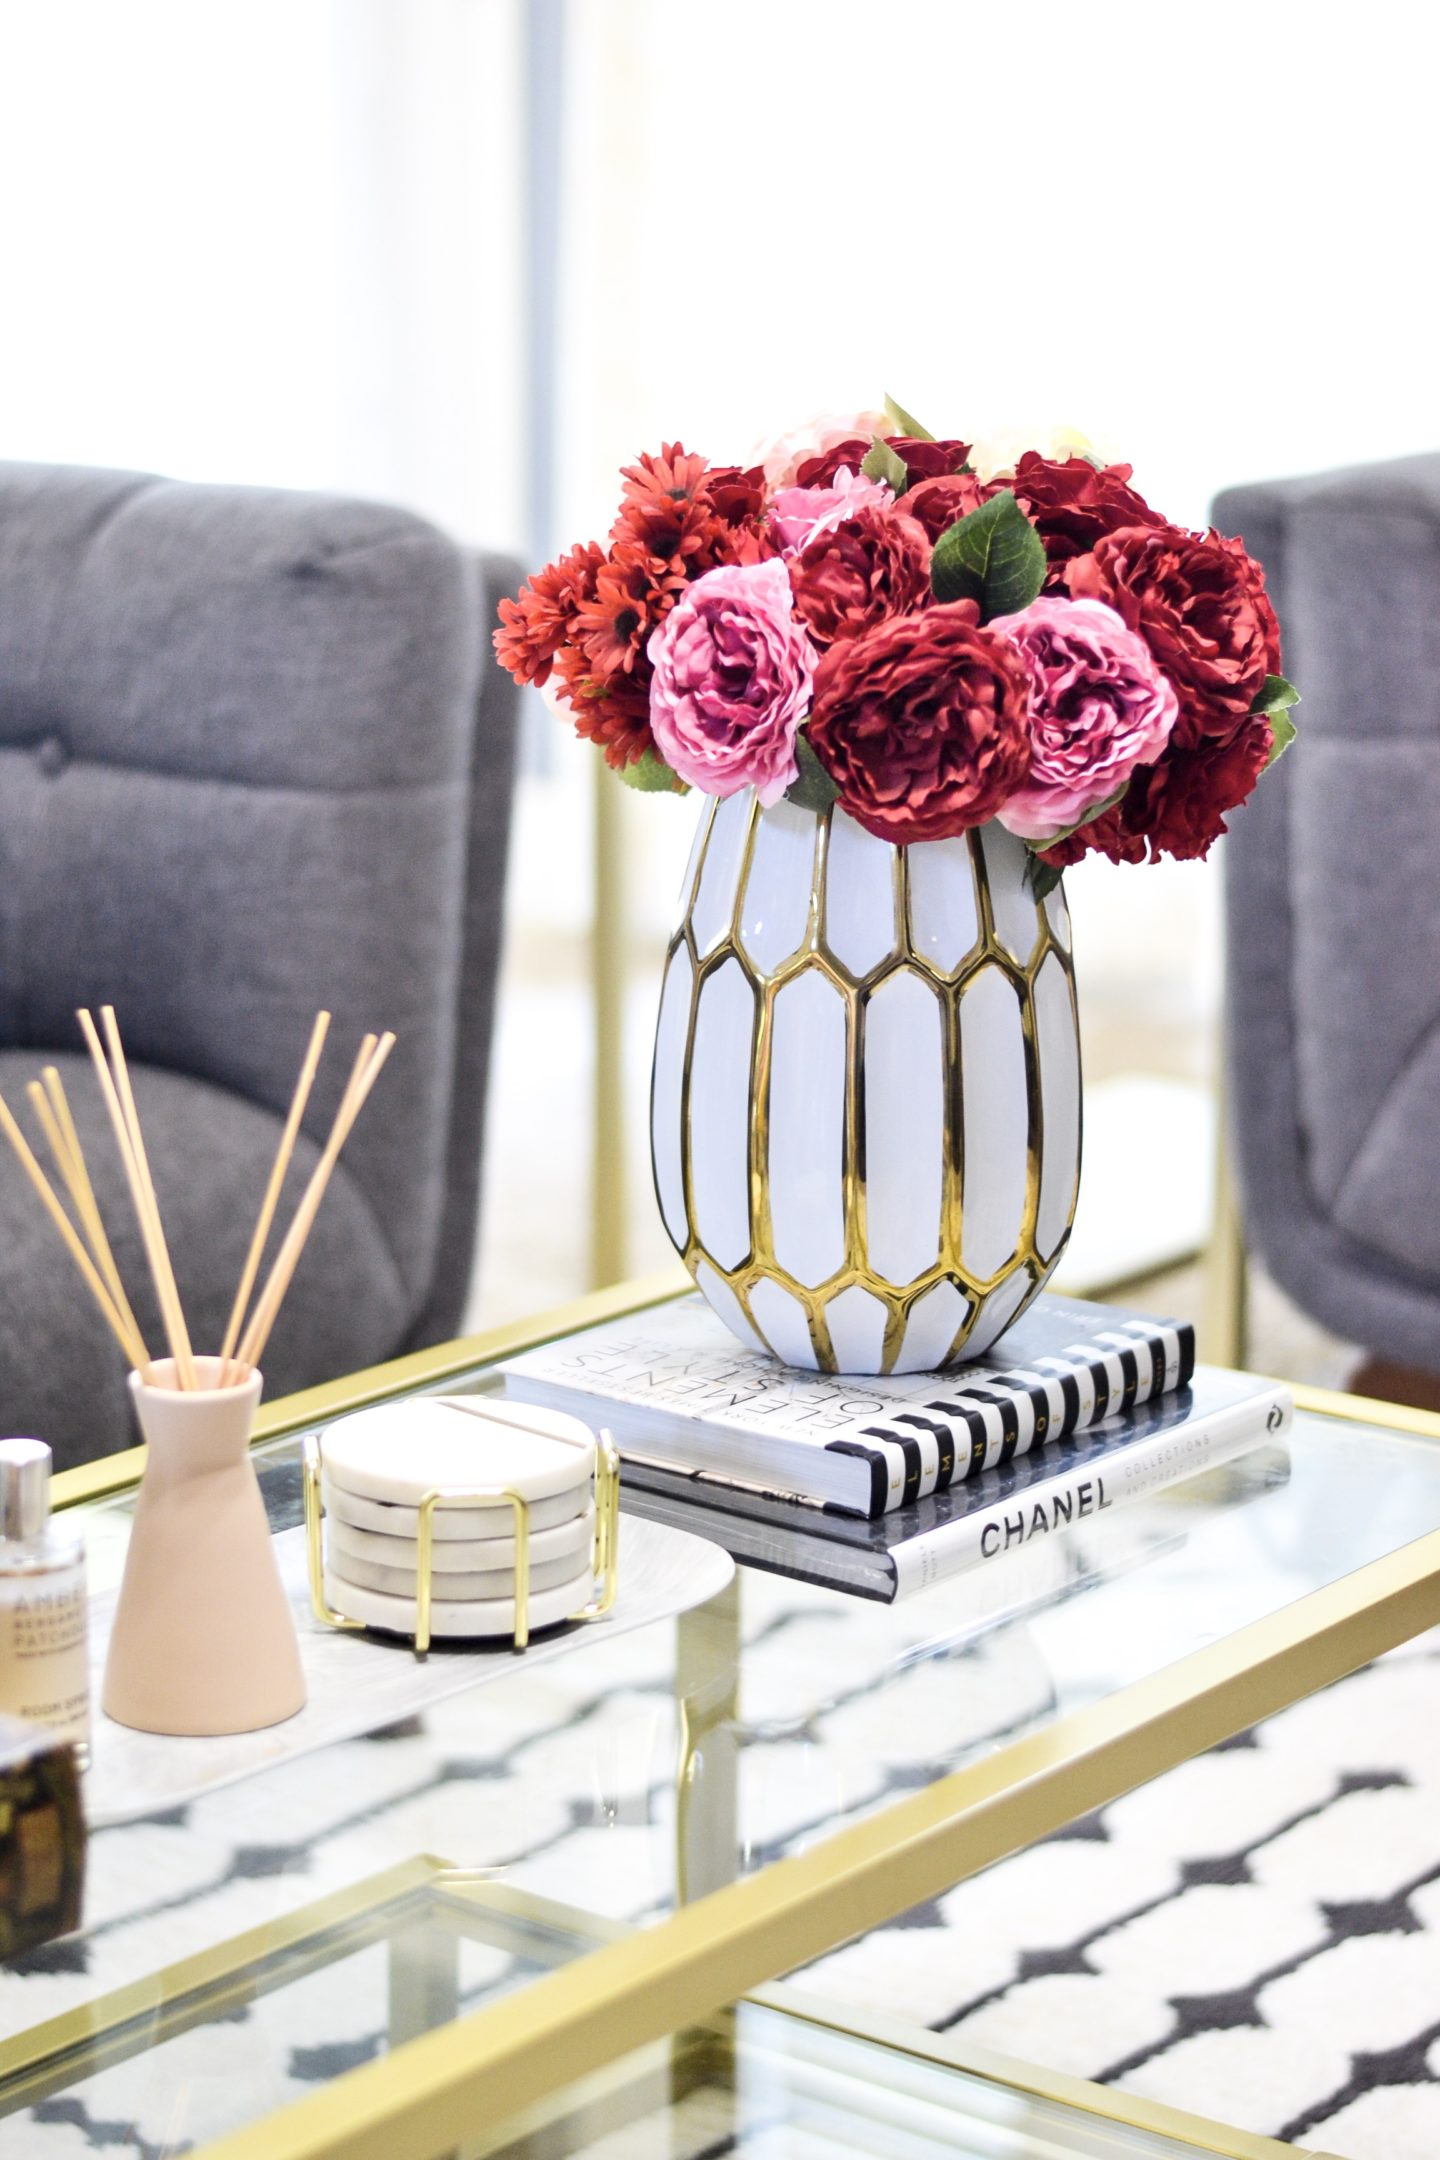 Styling and Decorating using Artificial Flowers